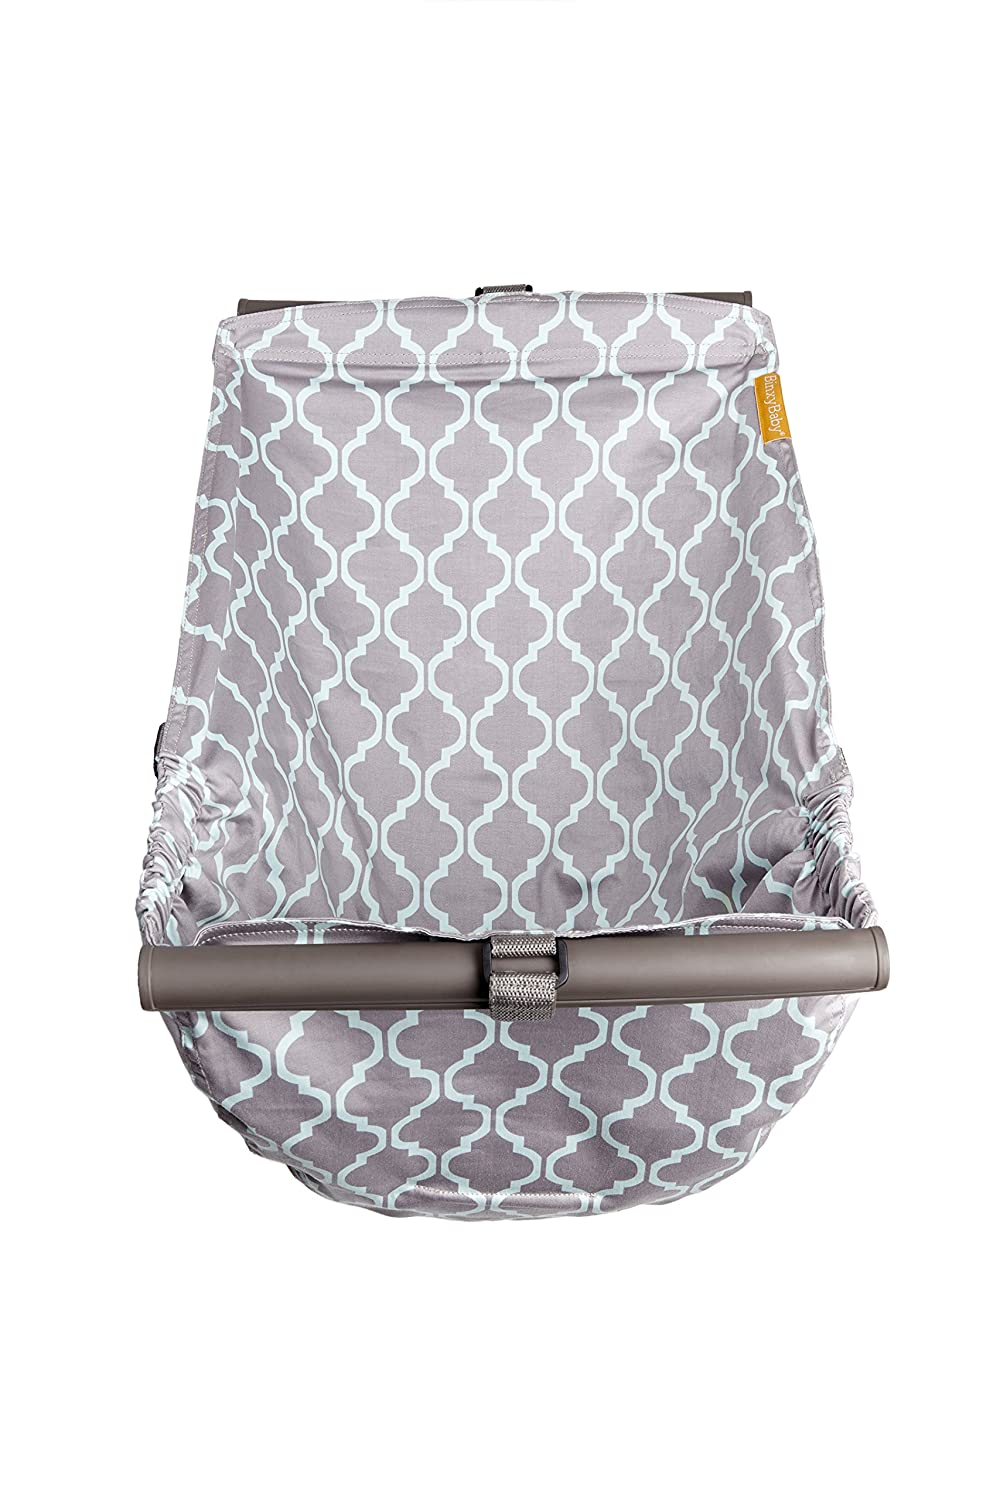 BINXY BABY Shopping Cart Hammock   The Original   Holds All Car Seat Models   Ergonomic Infant Carrier + Positioner : Baby